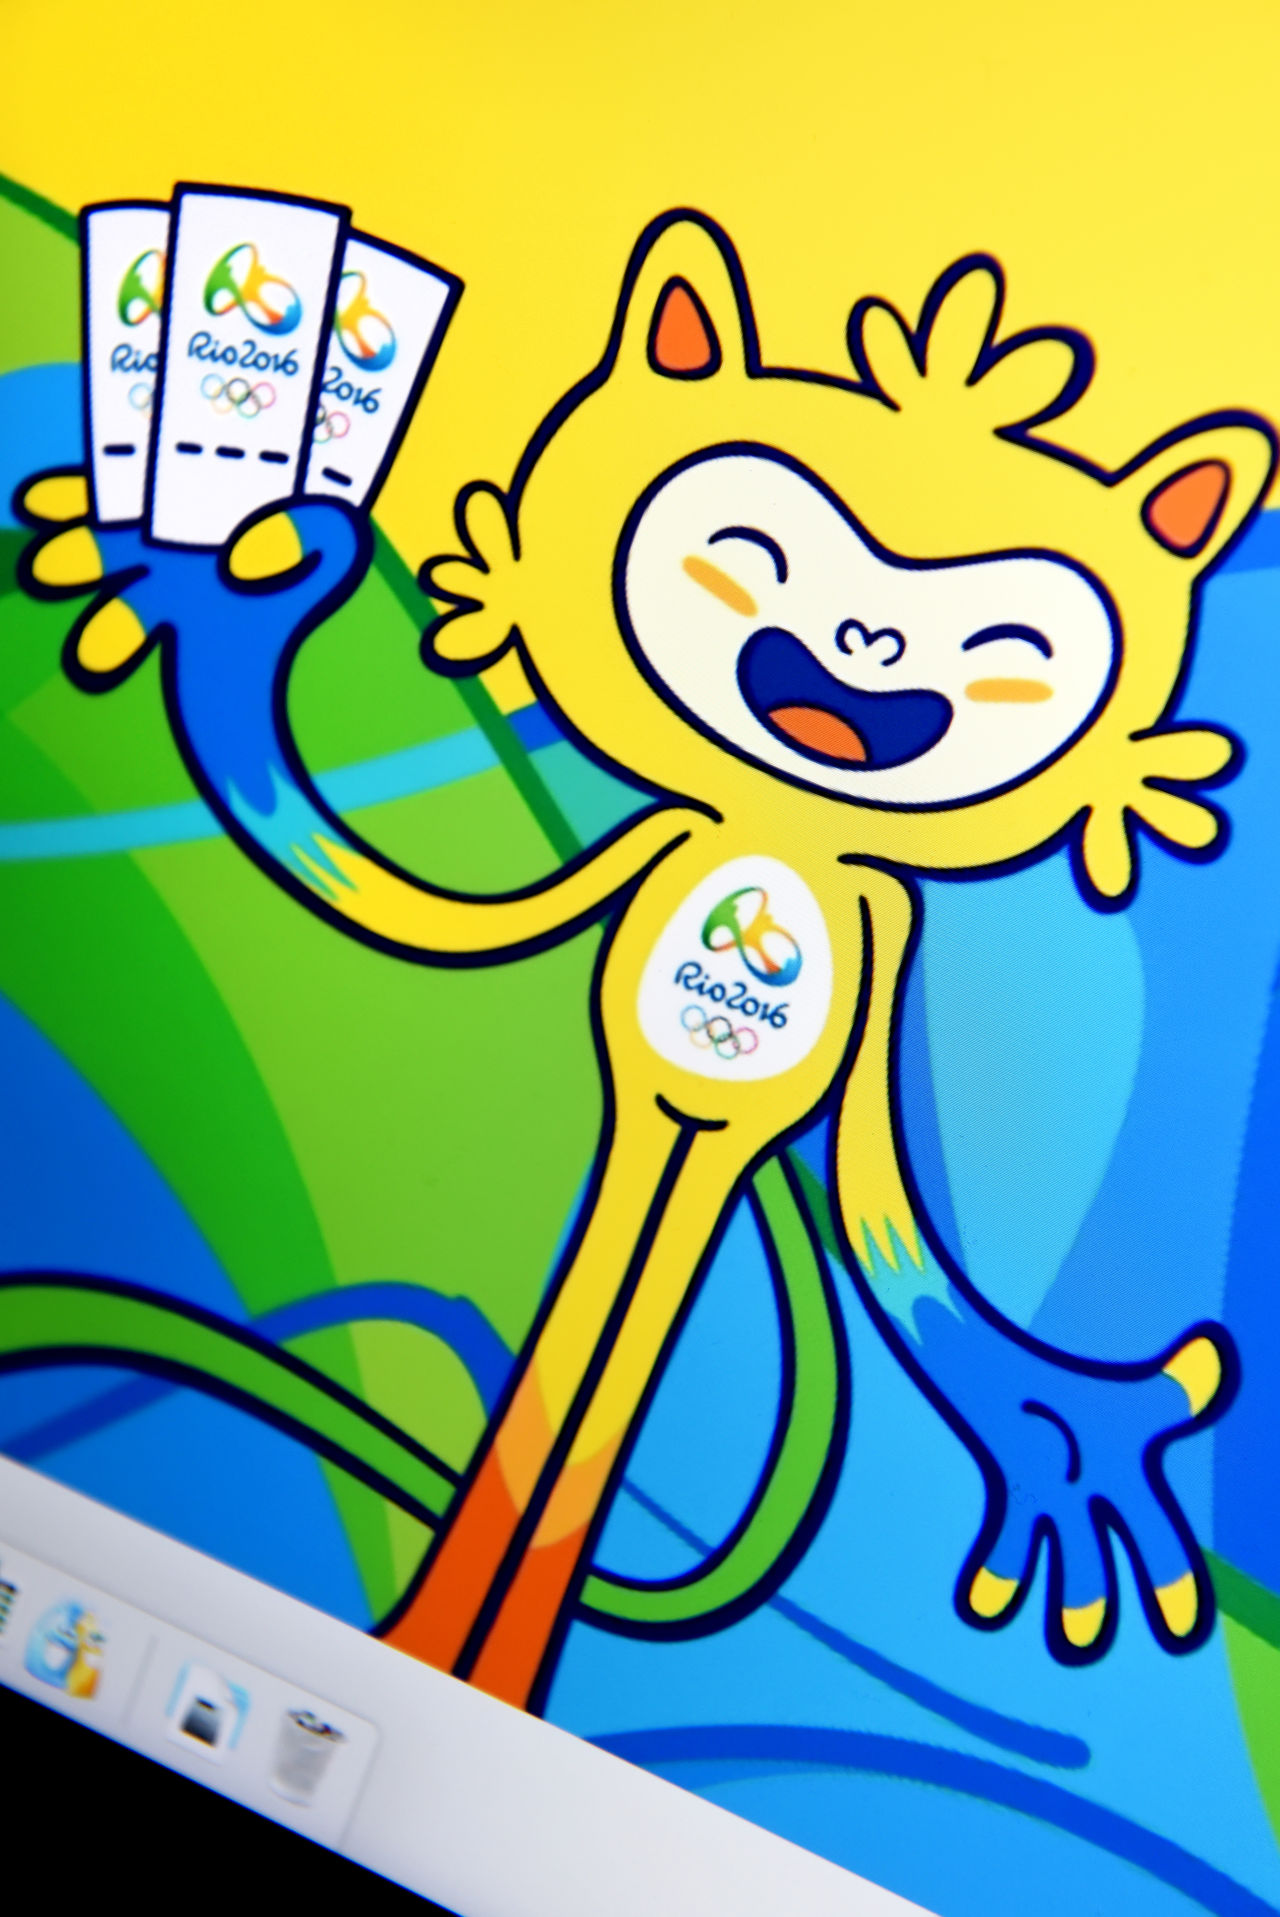 Latvia, Riga- May 17, 2016: Rio 2016. Official website of the Rio 2016 Olympics (5-21 Aug) in Rio de Janeiro, Brazil. Address August Brazil Championship Computer Editorial  Home Page Icon Internet Laptop Logo Logotype Monitor Official Olympic Rio 2016 Rio 2016 Olympics Rio De Janeiro Screen Symbol Tickets Website Www